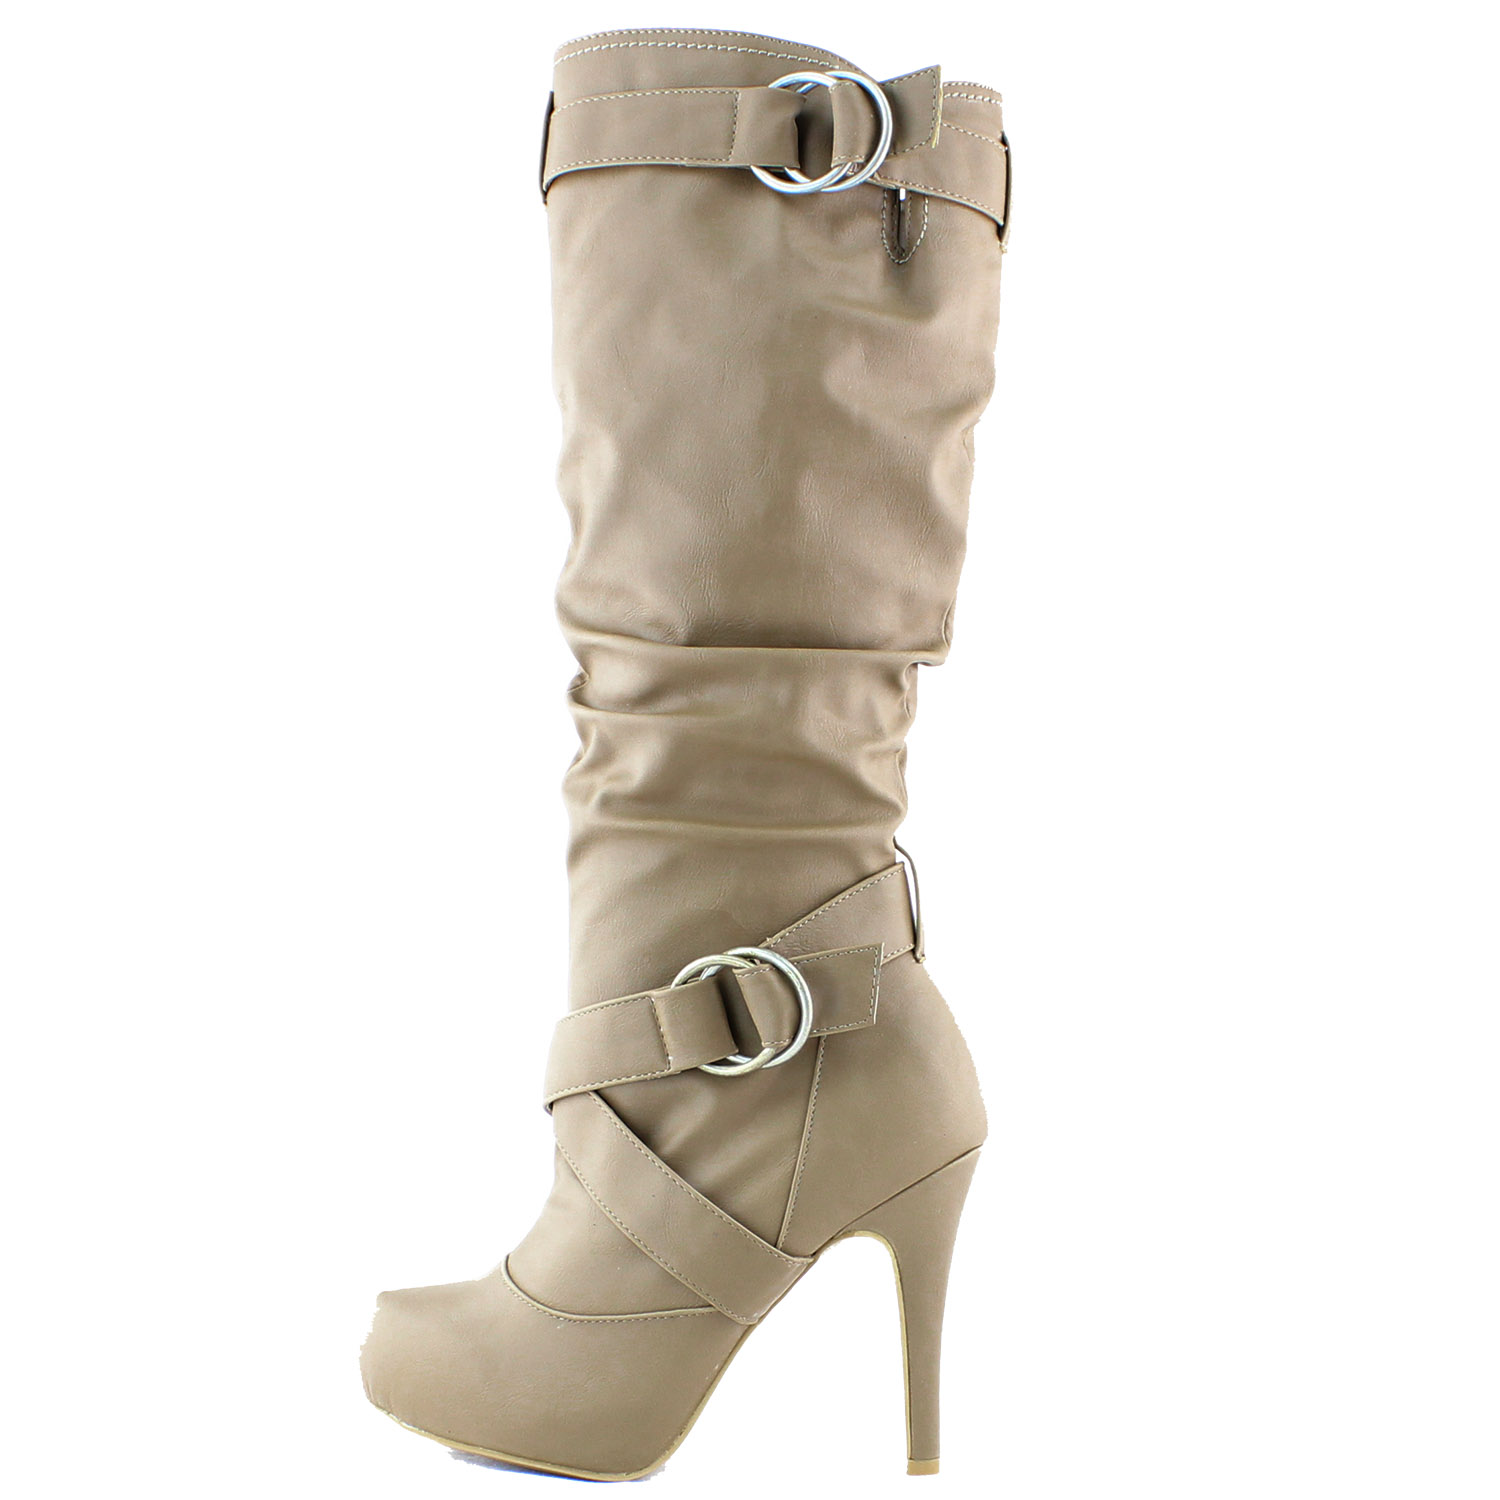 Taupe Beige Leather Boots Stiletto High Heel Platform Mid Knee ...